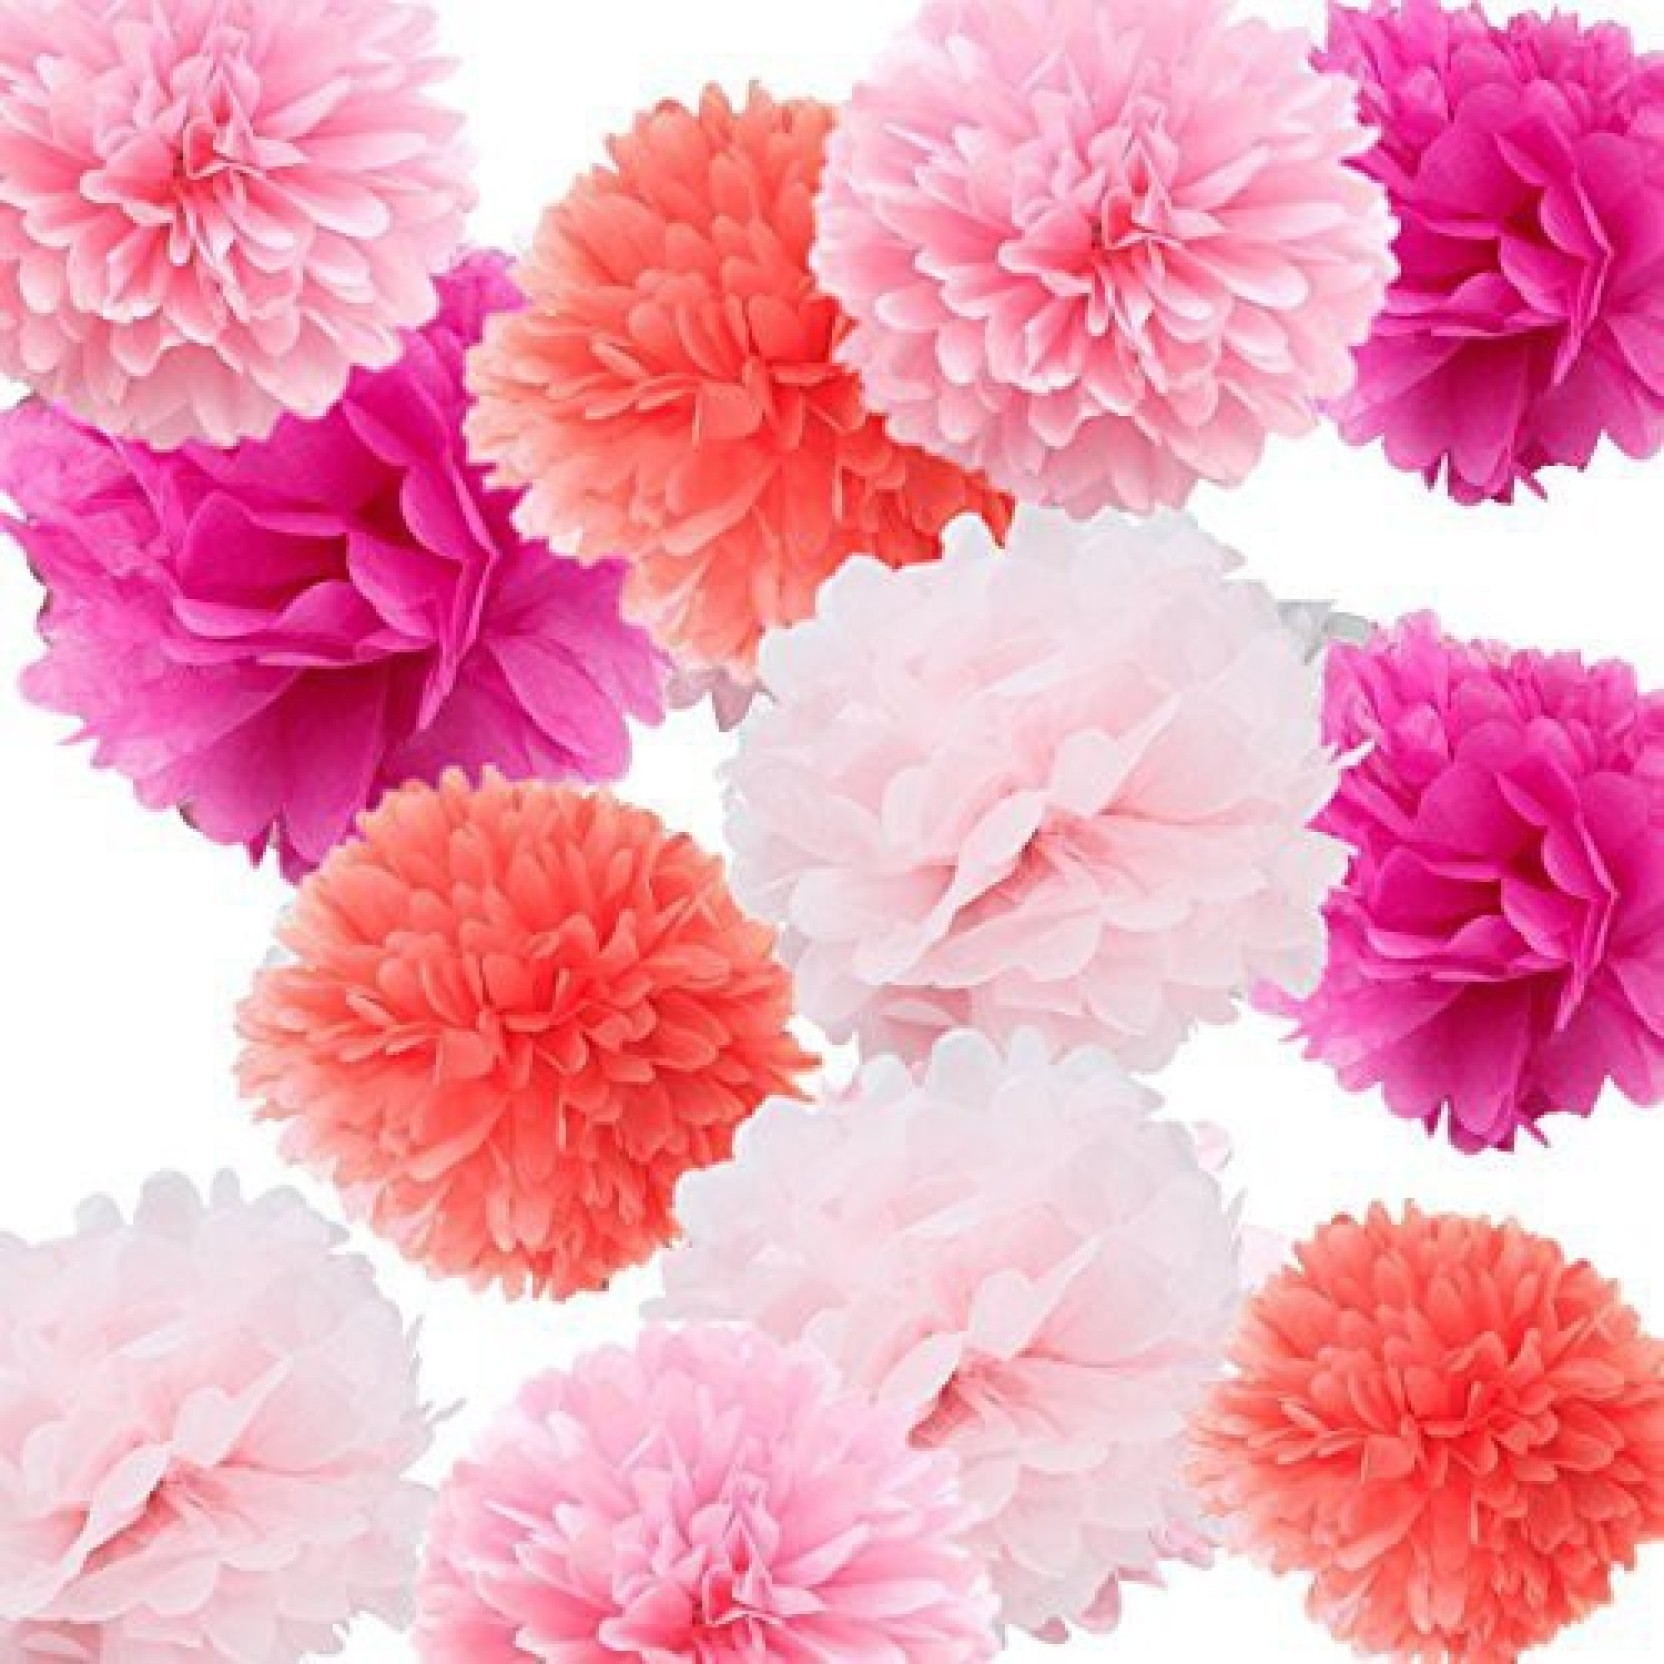 Fonder Mols Tissue Paper Flowers Decoraitons For Wall Handcraft